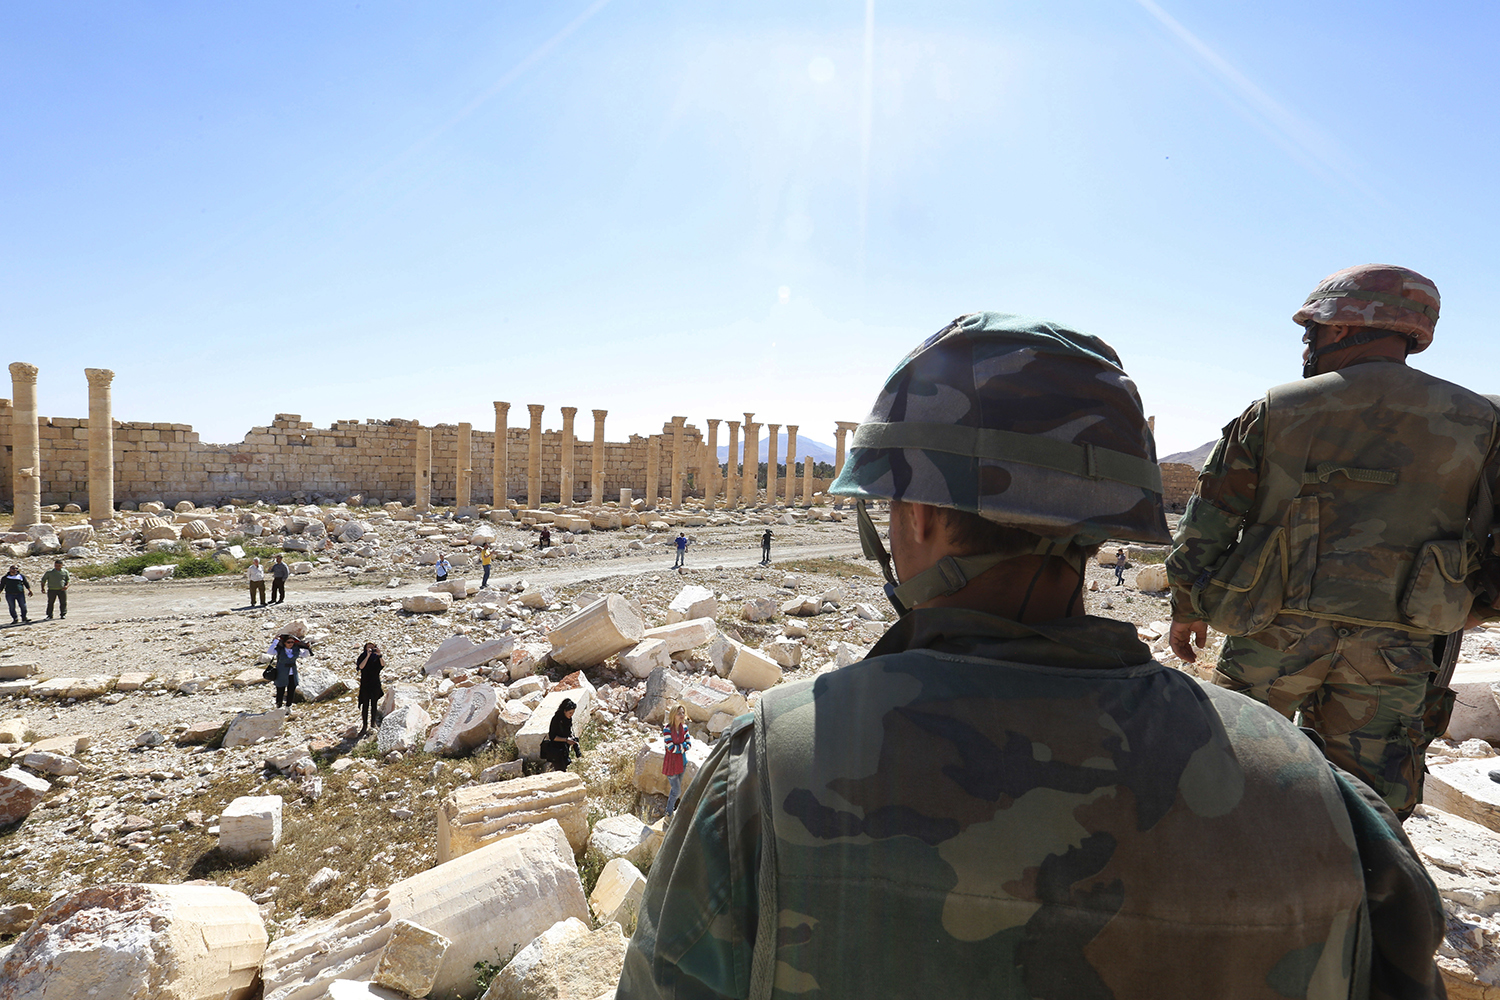 FILE -- In this April 1, 2016 file photo, soldiers look over damage at the historical Bel Temple in the ancient city of Palmyra, Homs provence, Syria. Palmyra, the archaeological gem that Islamic State fighters retook Sunday, Dec. 11, 2016, from Syrian troops, is a desert oasis surrounded by palm trees, and a UNESCO world heritage site, that boasts 2,000-year-old towering Roman-era colonnades and priceless artifacts. It is also a strategic crossroads linking the Syrian capital, Damascus, with the country's east and neighboring Iraq. (AP Photo, File)